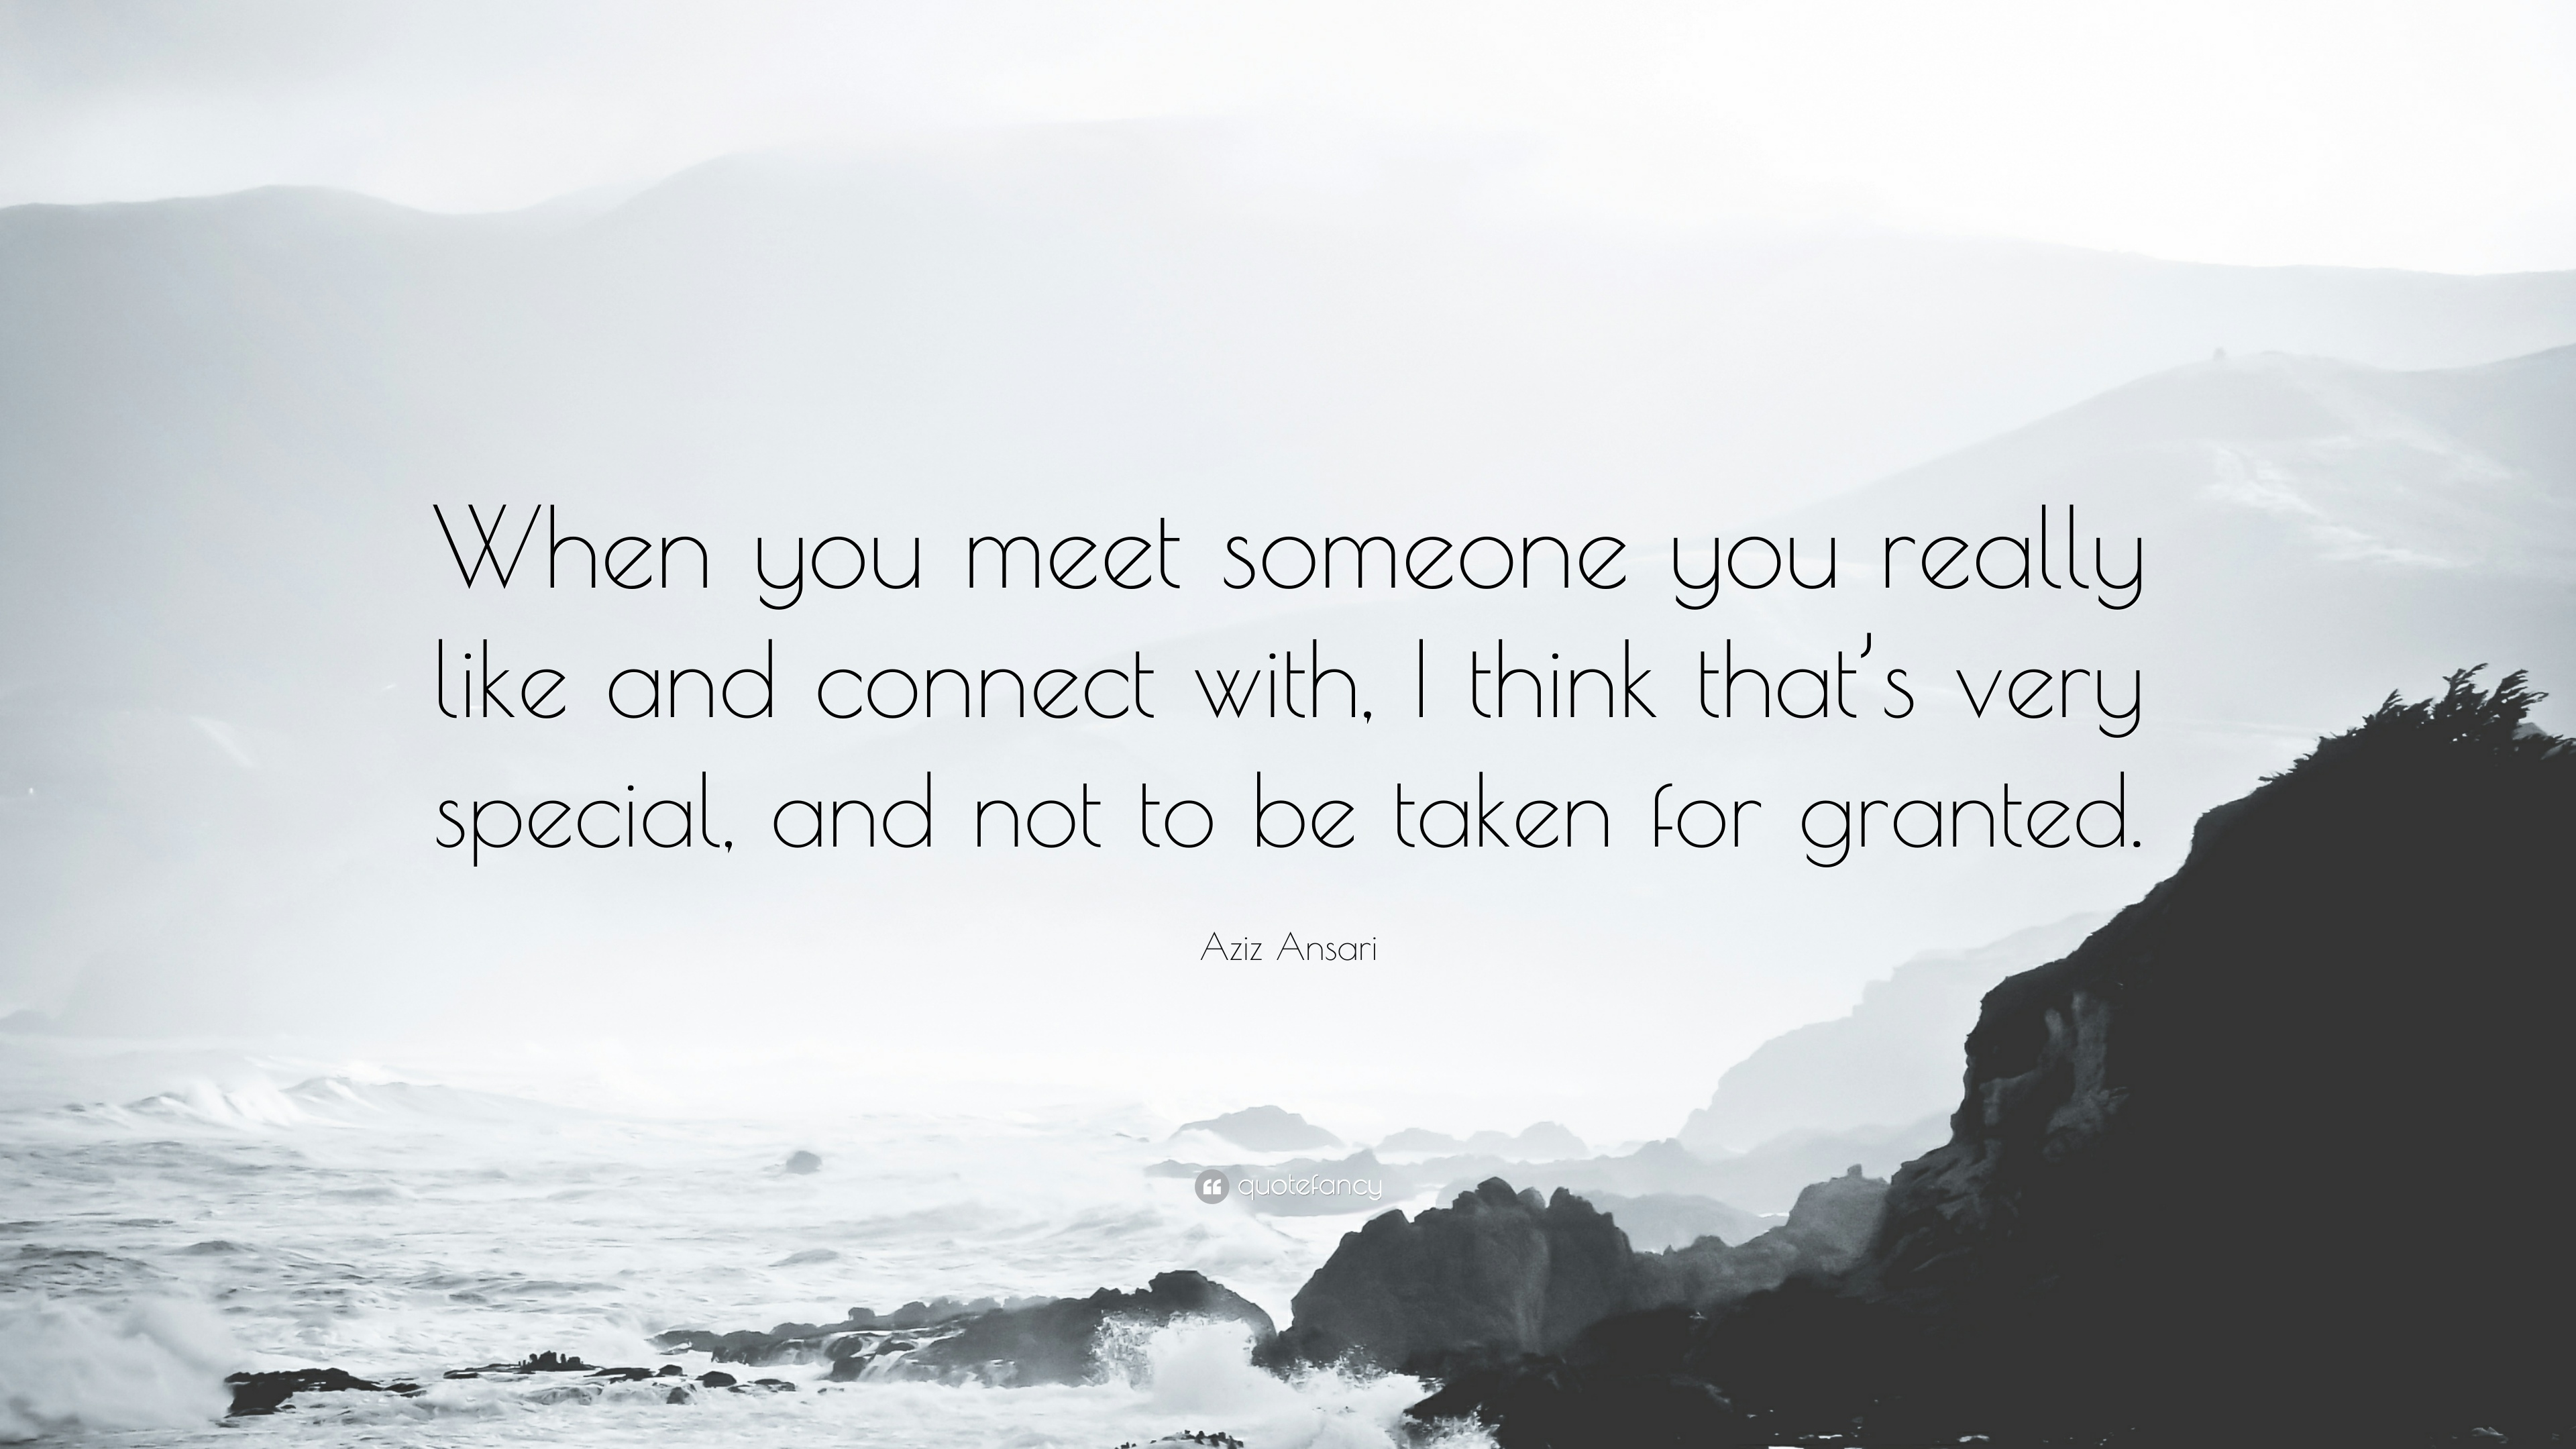 When you meet someone